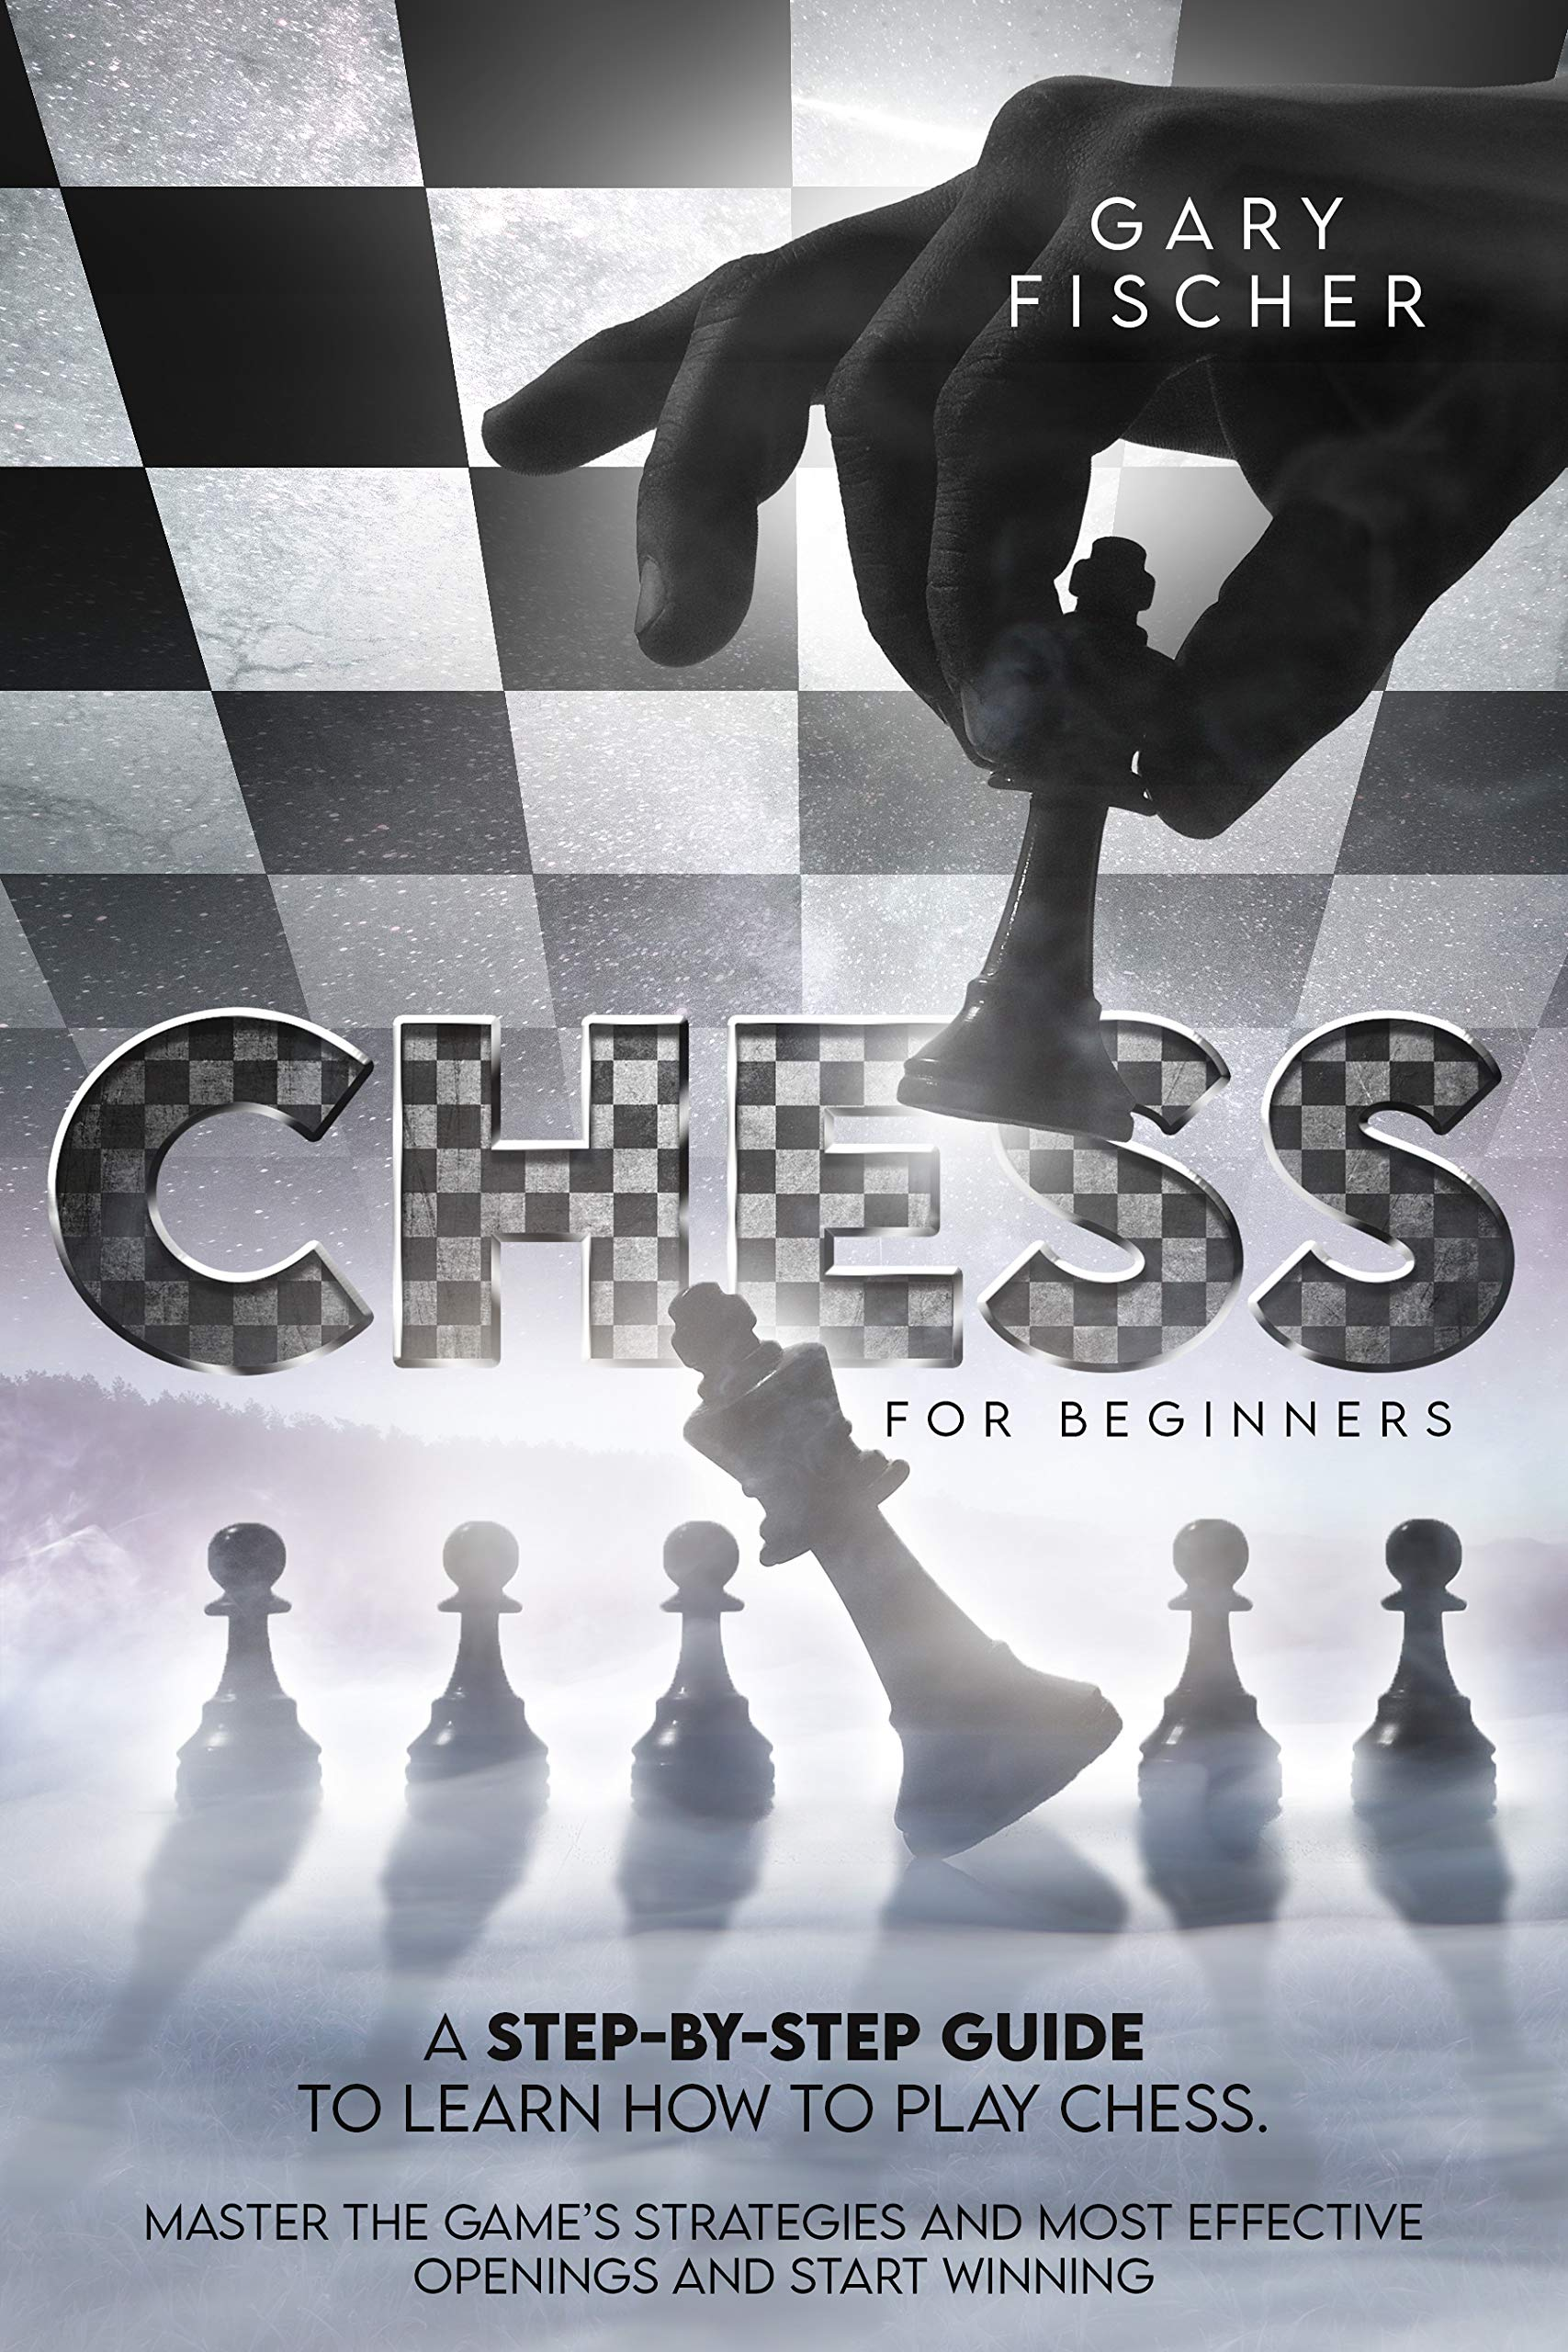 Chess for beginners: A step-by-step guide to learn how to play chess. Master the game's strategies and most effective openings and start winning